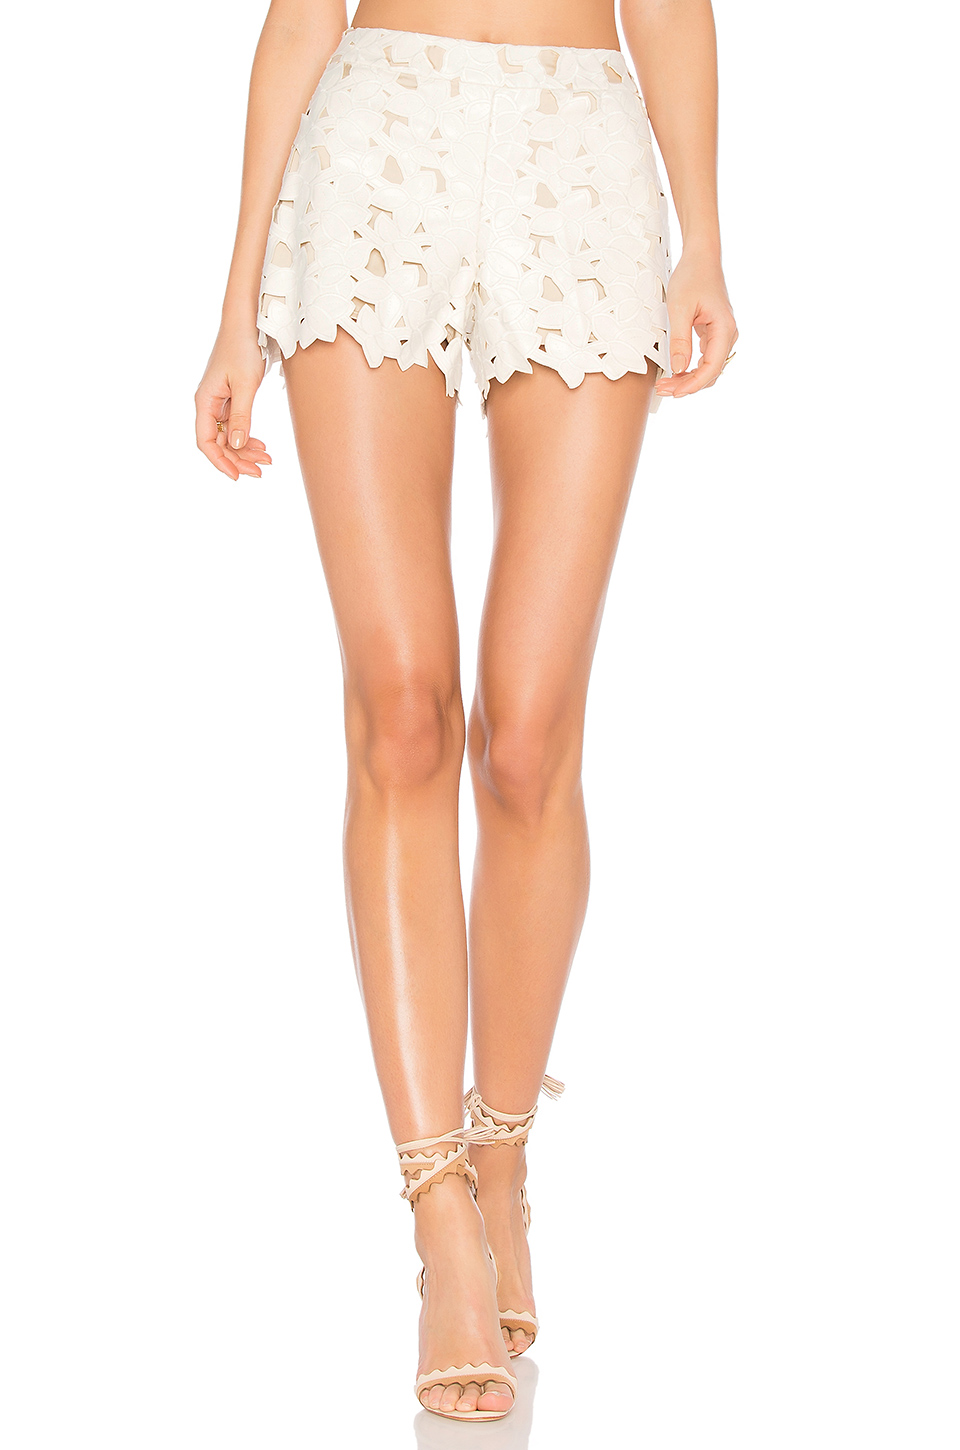 For Nice Cheap Online Alice+olivia Woman Amaris Laser-cut Embroidered Faux Leather Shorts Ivory Size 10 Alice & Olivia Cheap Classic Discount Sale Online 8uYeQpO